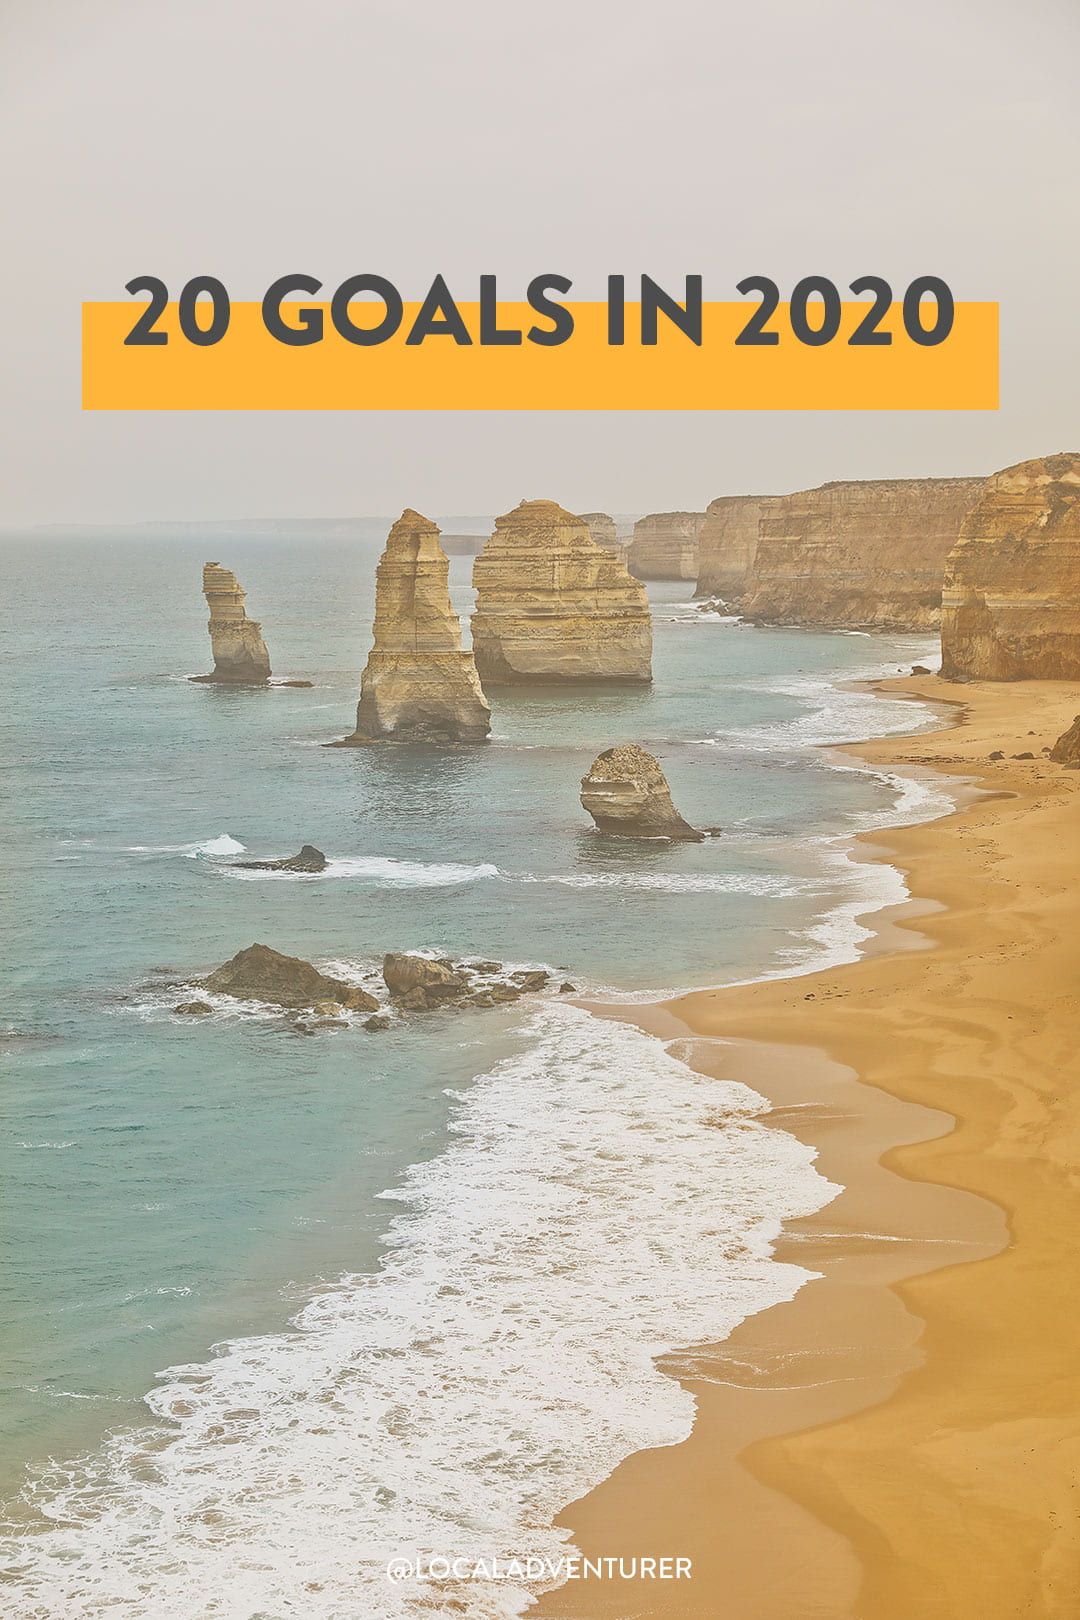 20 Goals in 2020 - New Year's Resolutions